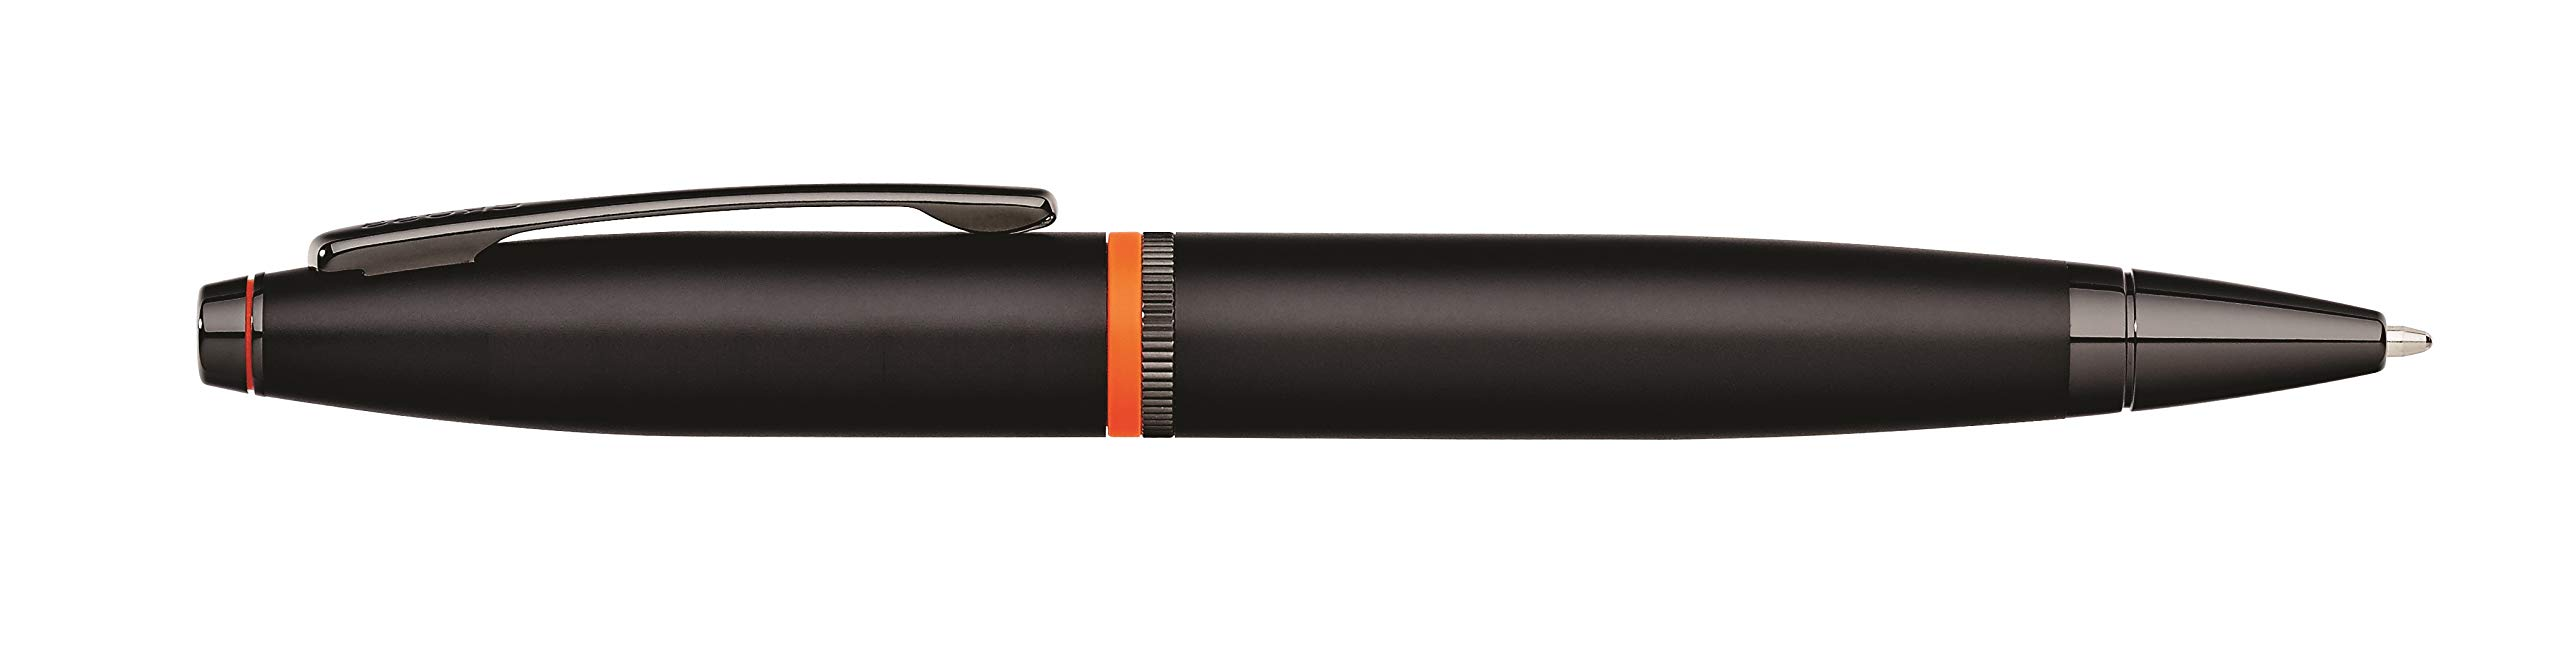 Cross Calais Liberty United Matte Black Lacquer Ballpoint Pen with Glossy Black PVD Appointments by Cross (Image #5)